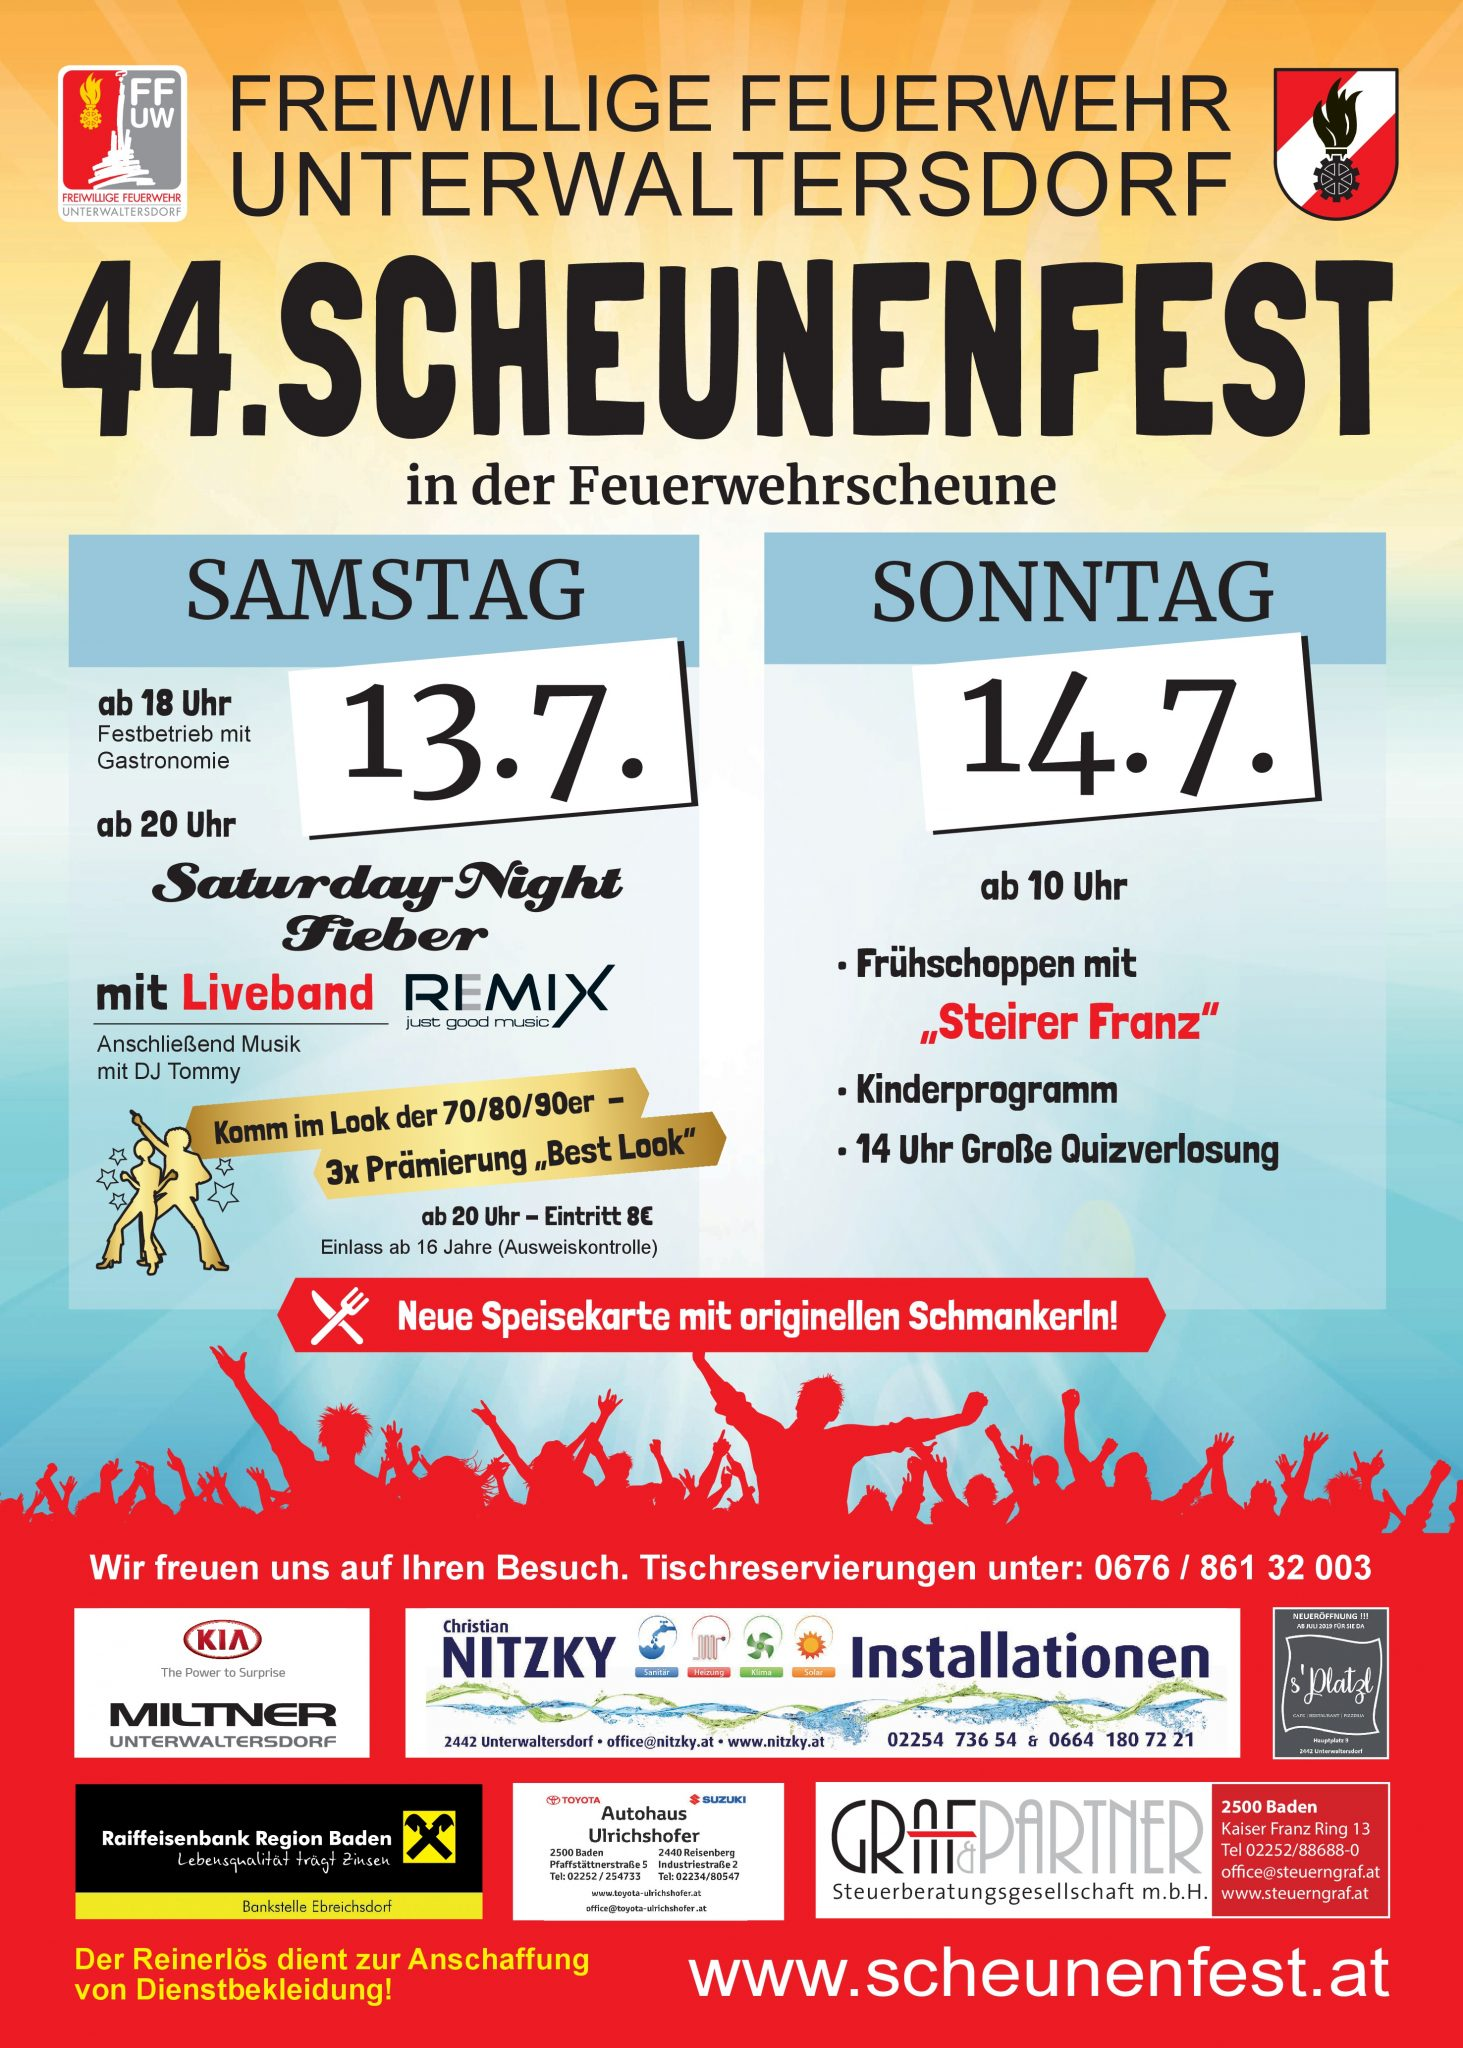 a1_scheunenfest_2019_500x700mm_preview